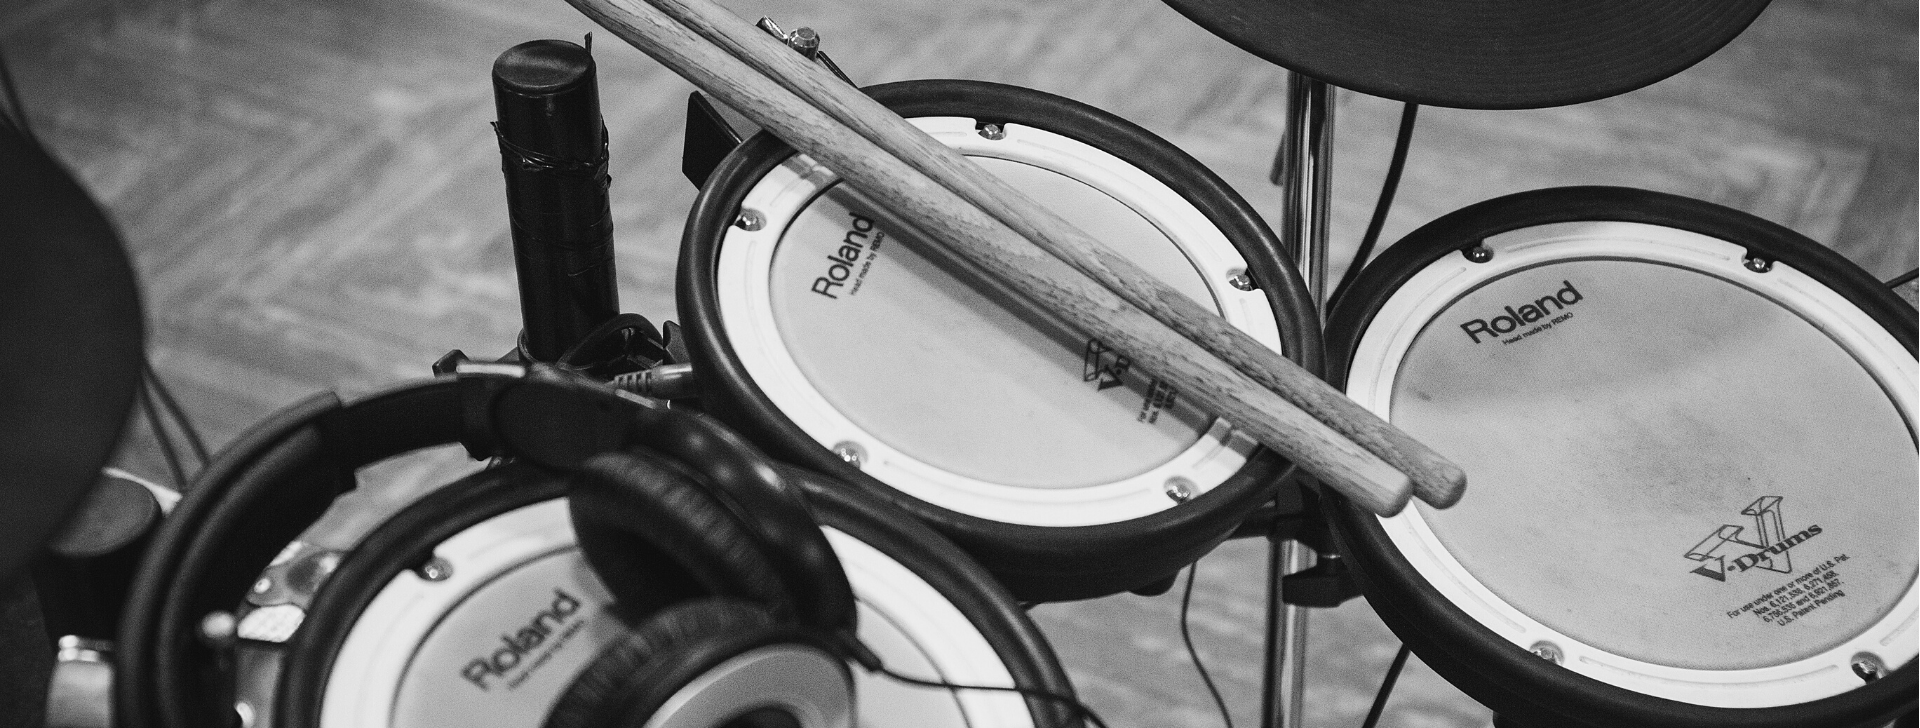 learning to drum at home: electronic drum kit with drumsticks resting on the tom